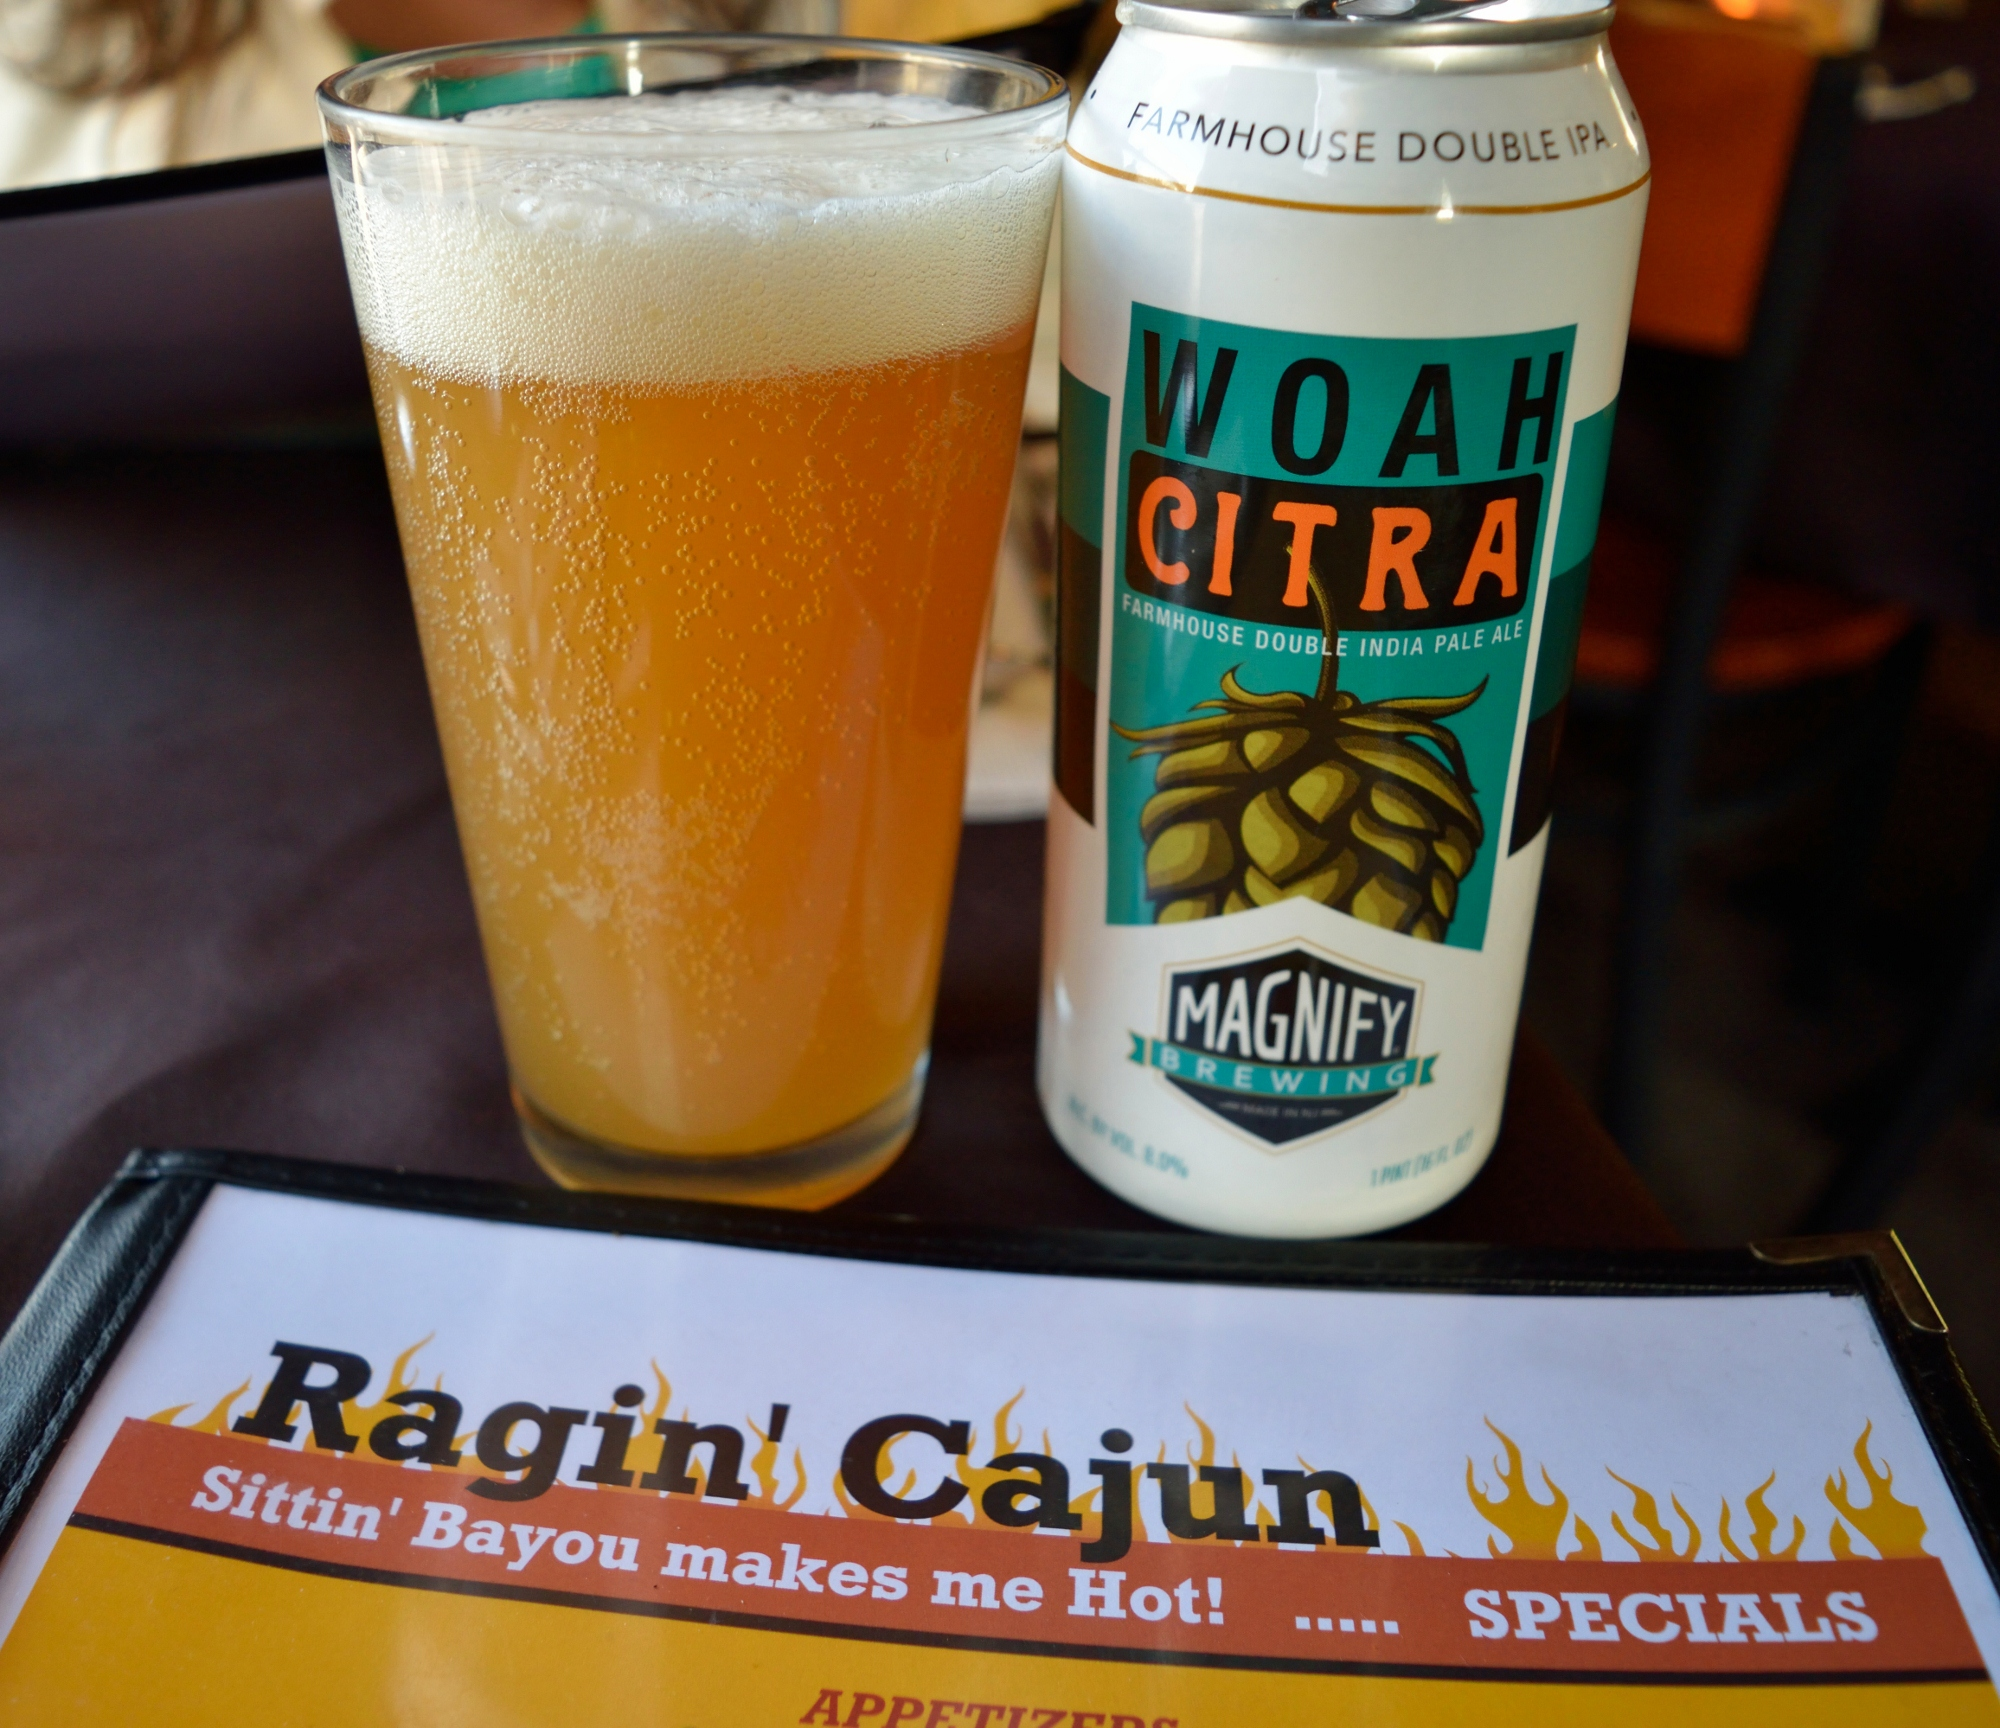 BYOB! I brought mine - Woah Citra Double IPA from Magnify Brewing.